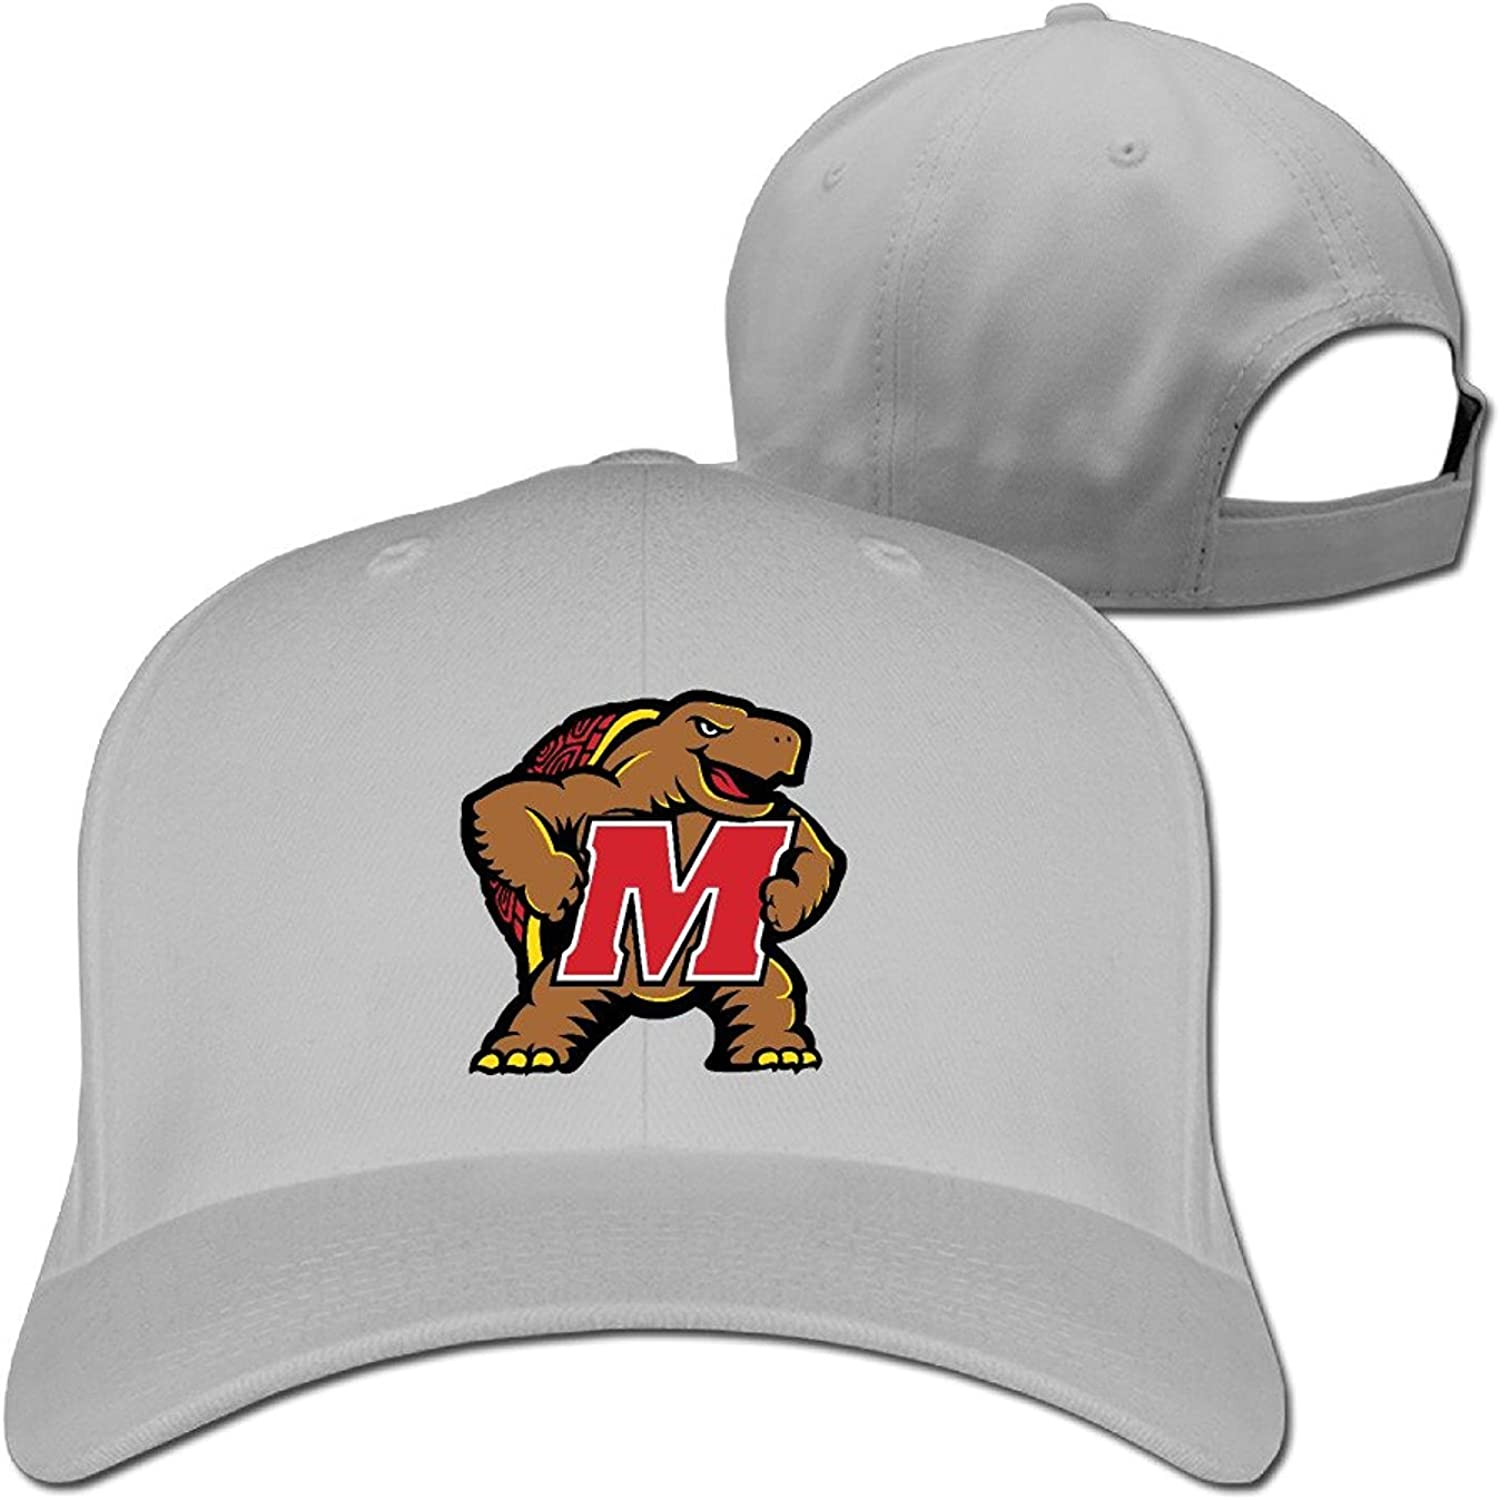 MZONE Novelty University of Maryland UMD Testudo Adult Hip Hop Visor Cap Black